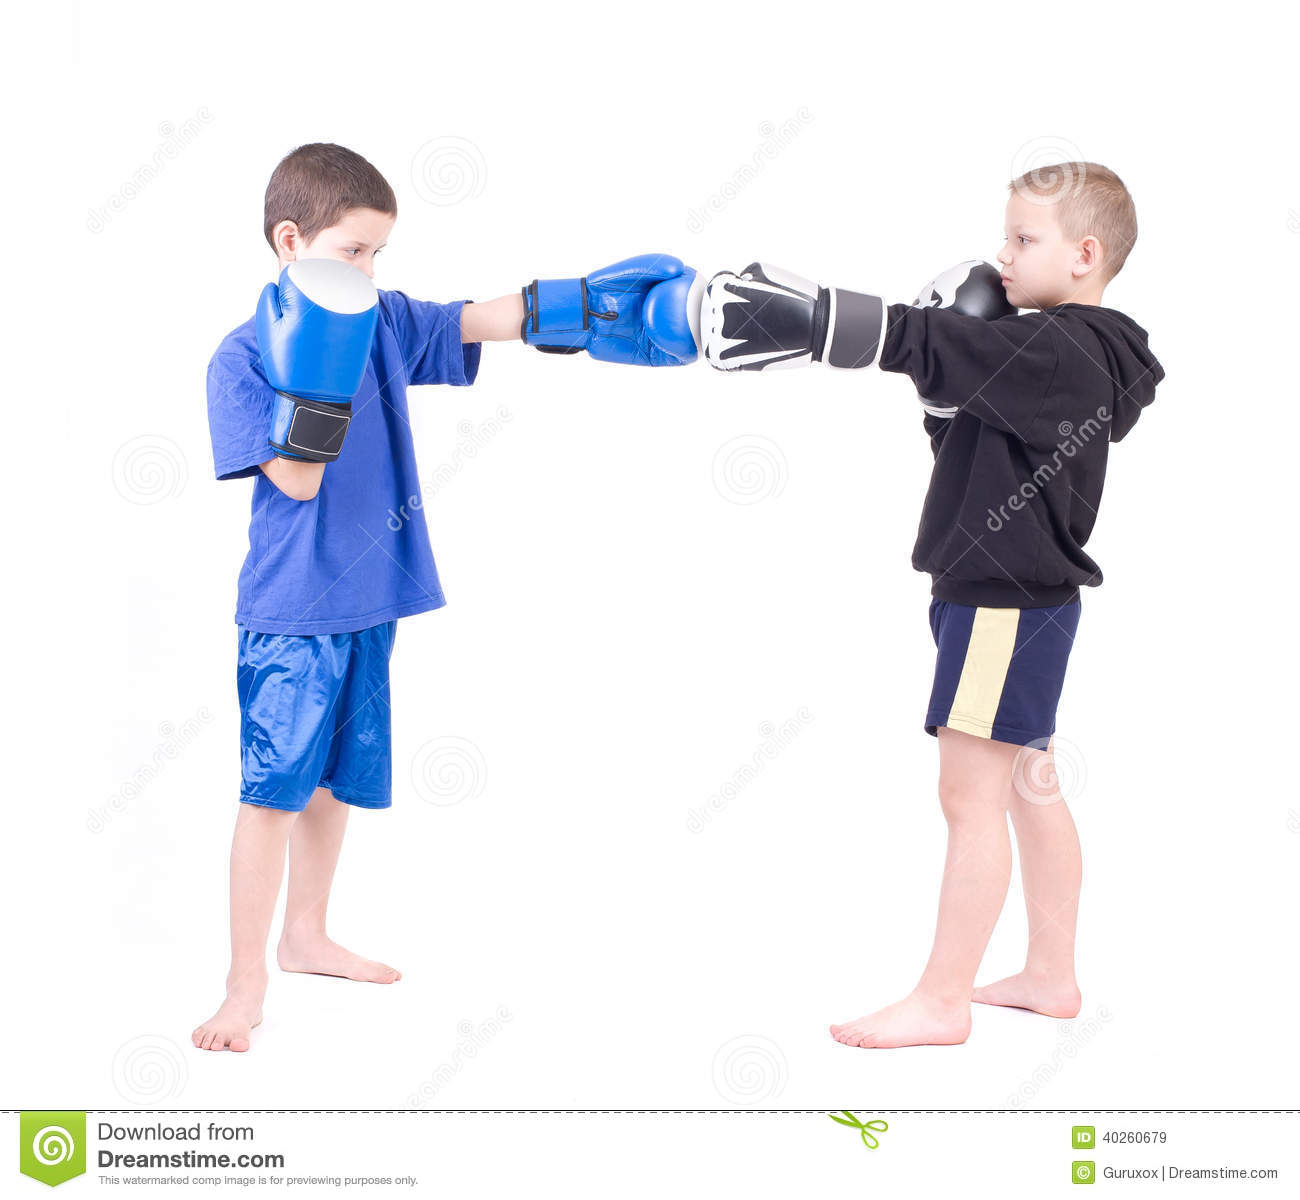 More similar stock images of ` Two kids sparring `